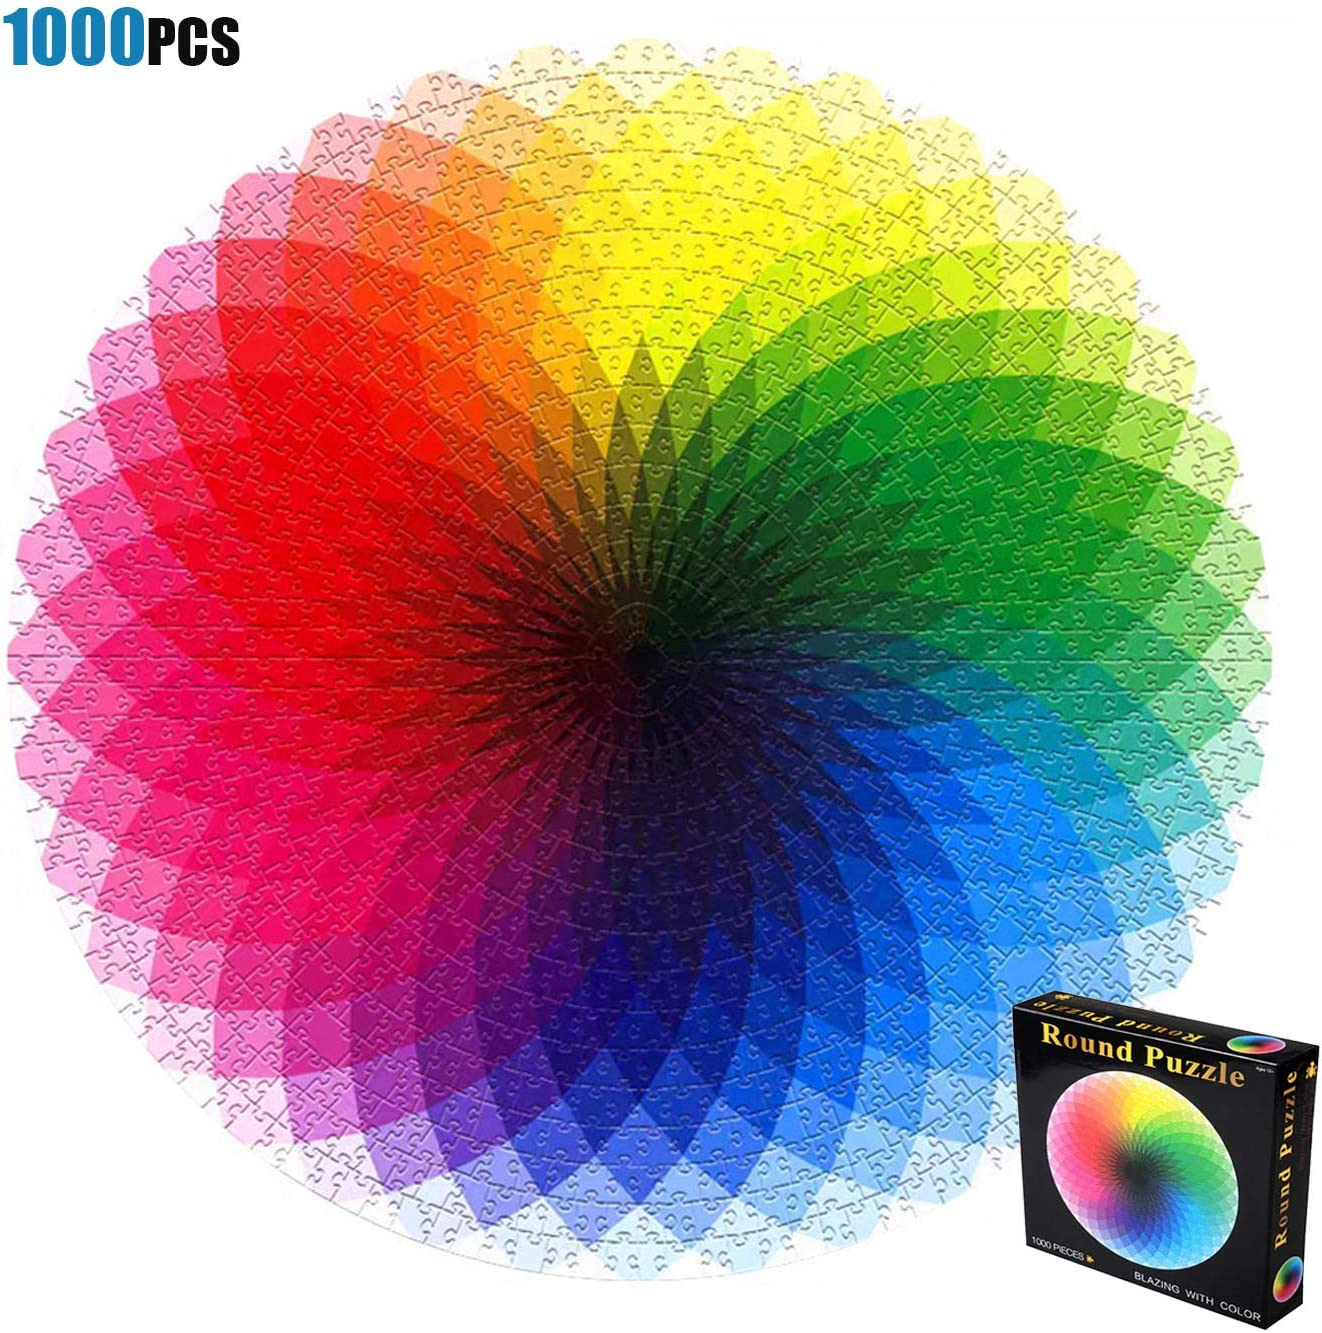 Puzzles for Adults Teen 1000 Piece Gradient Color Rainbow Large Round Jigsaw Puzzle Difficult and Challenge